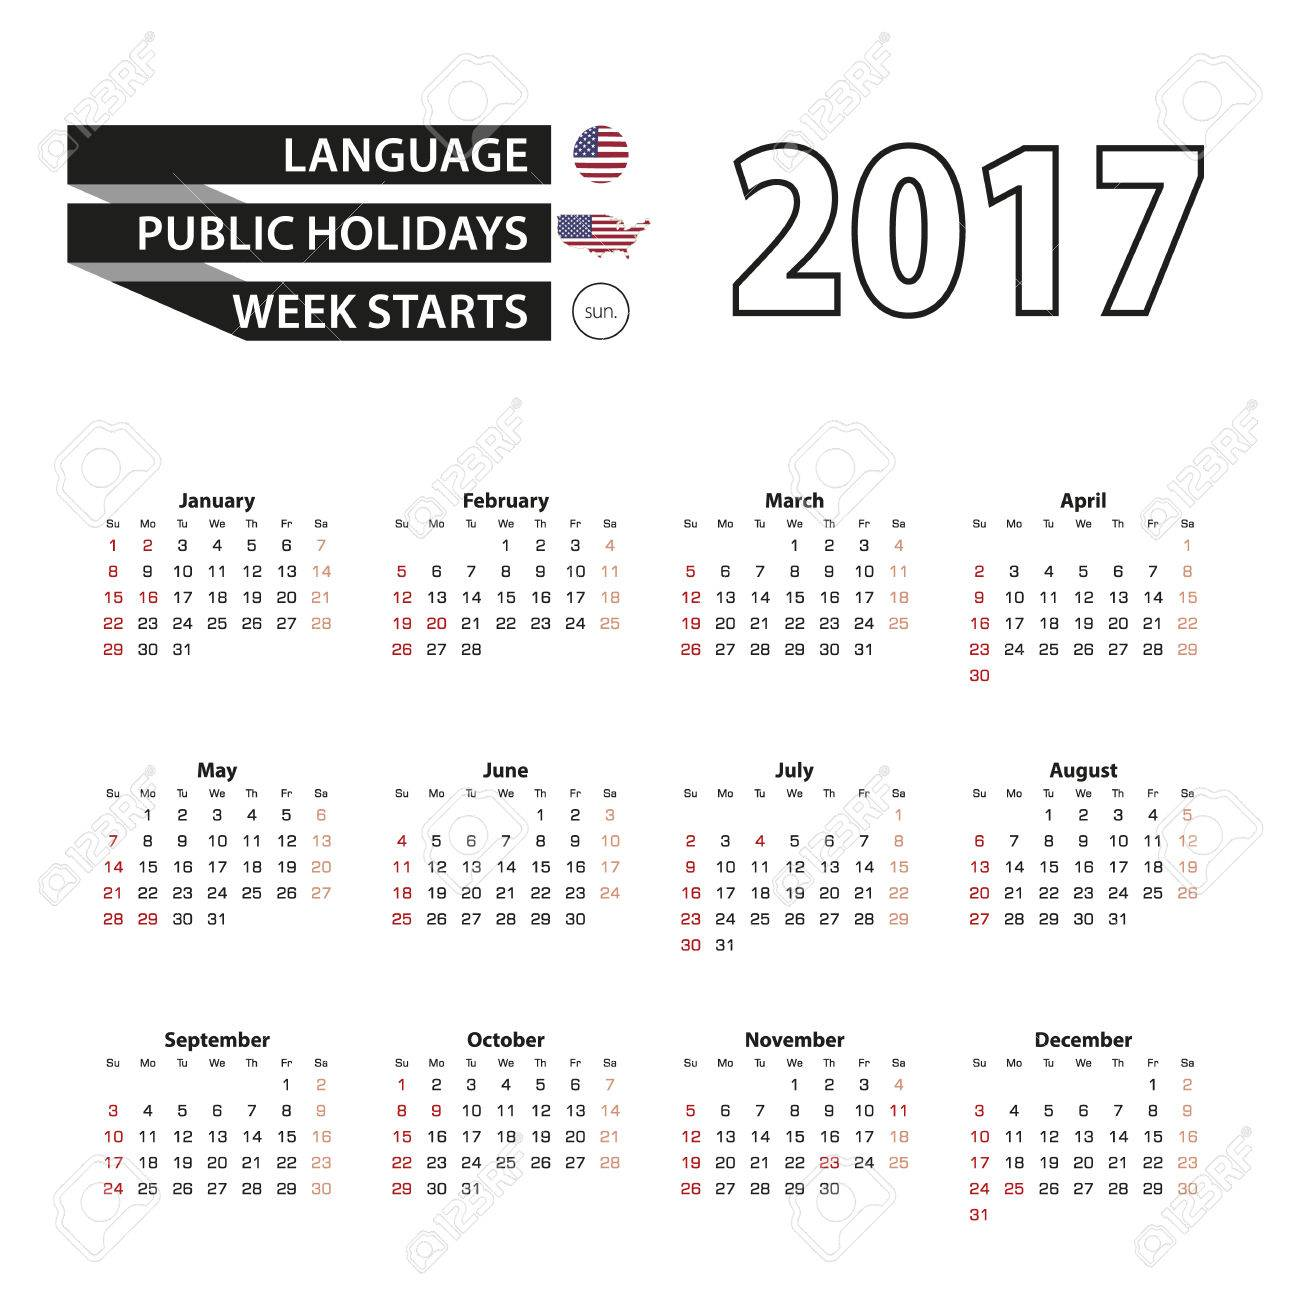 Calendar 2017 on english language with public holidays for united calendar 2017 on english language with public holidays for united states of america in year publicscrutiny Image collections